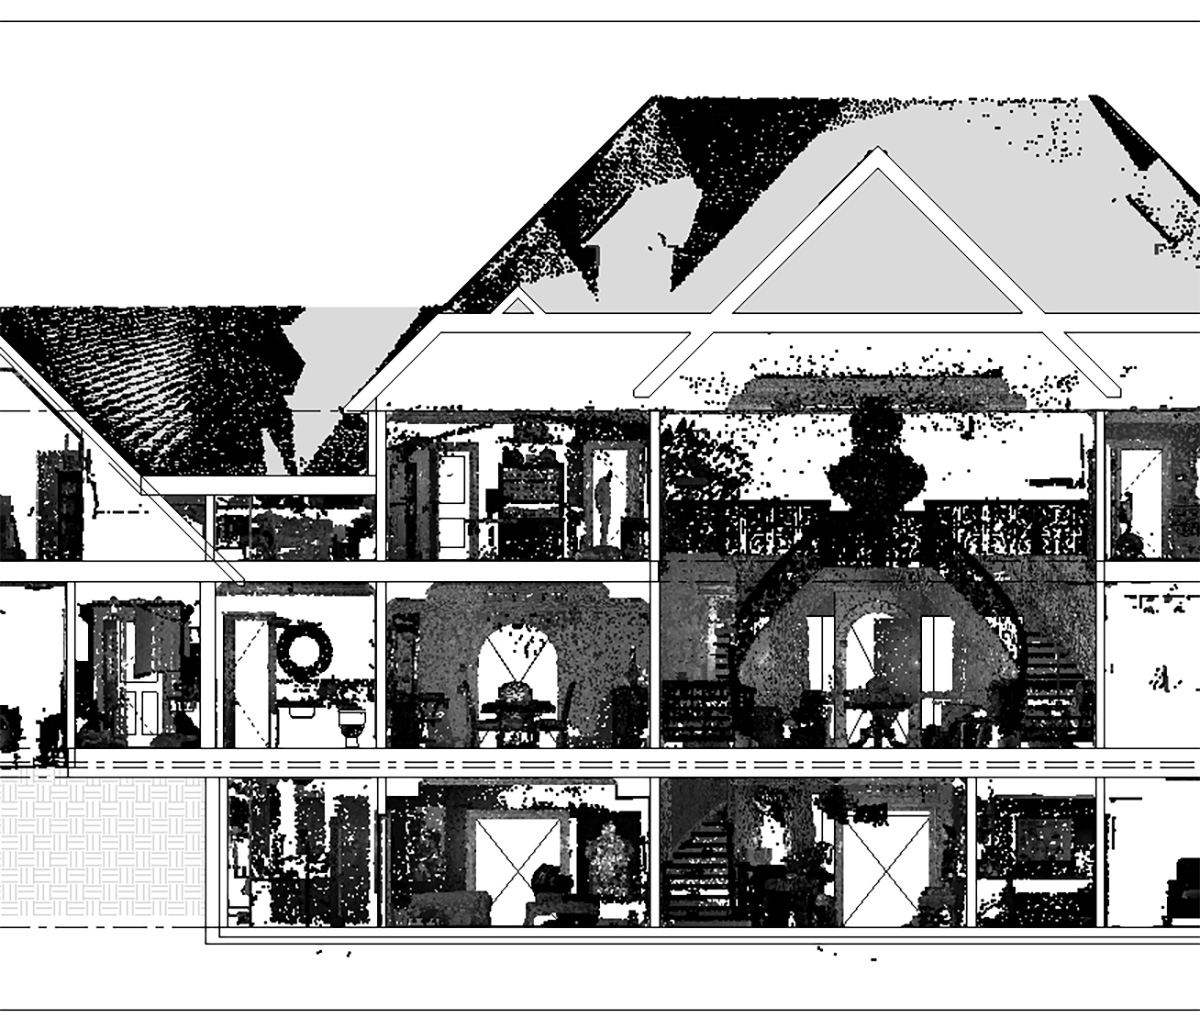 MiTek 3D Scan Documenting - Black and white cutaway of a scanned, three-story building